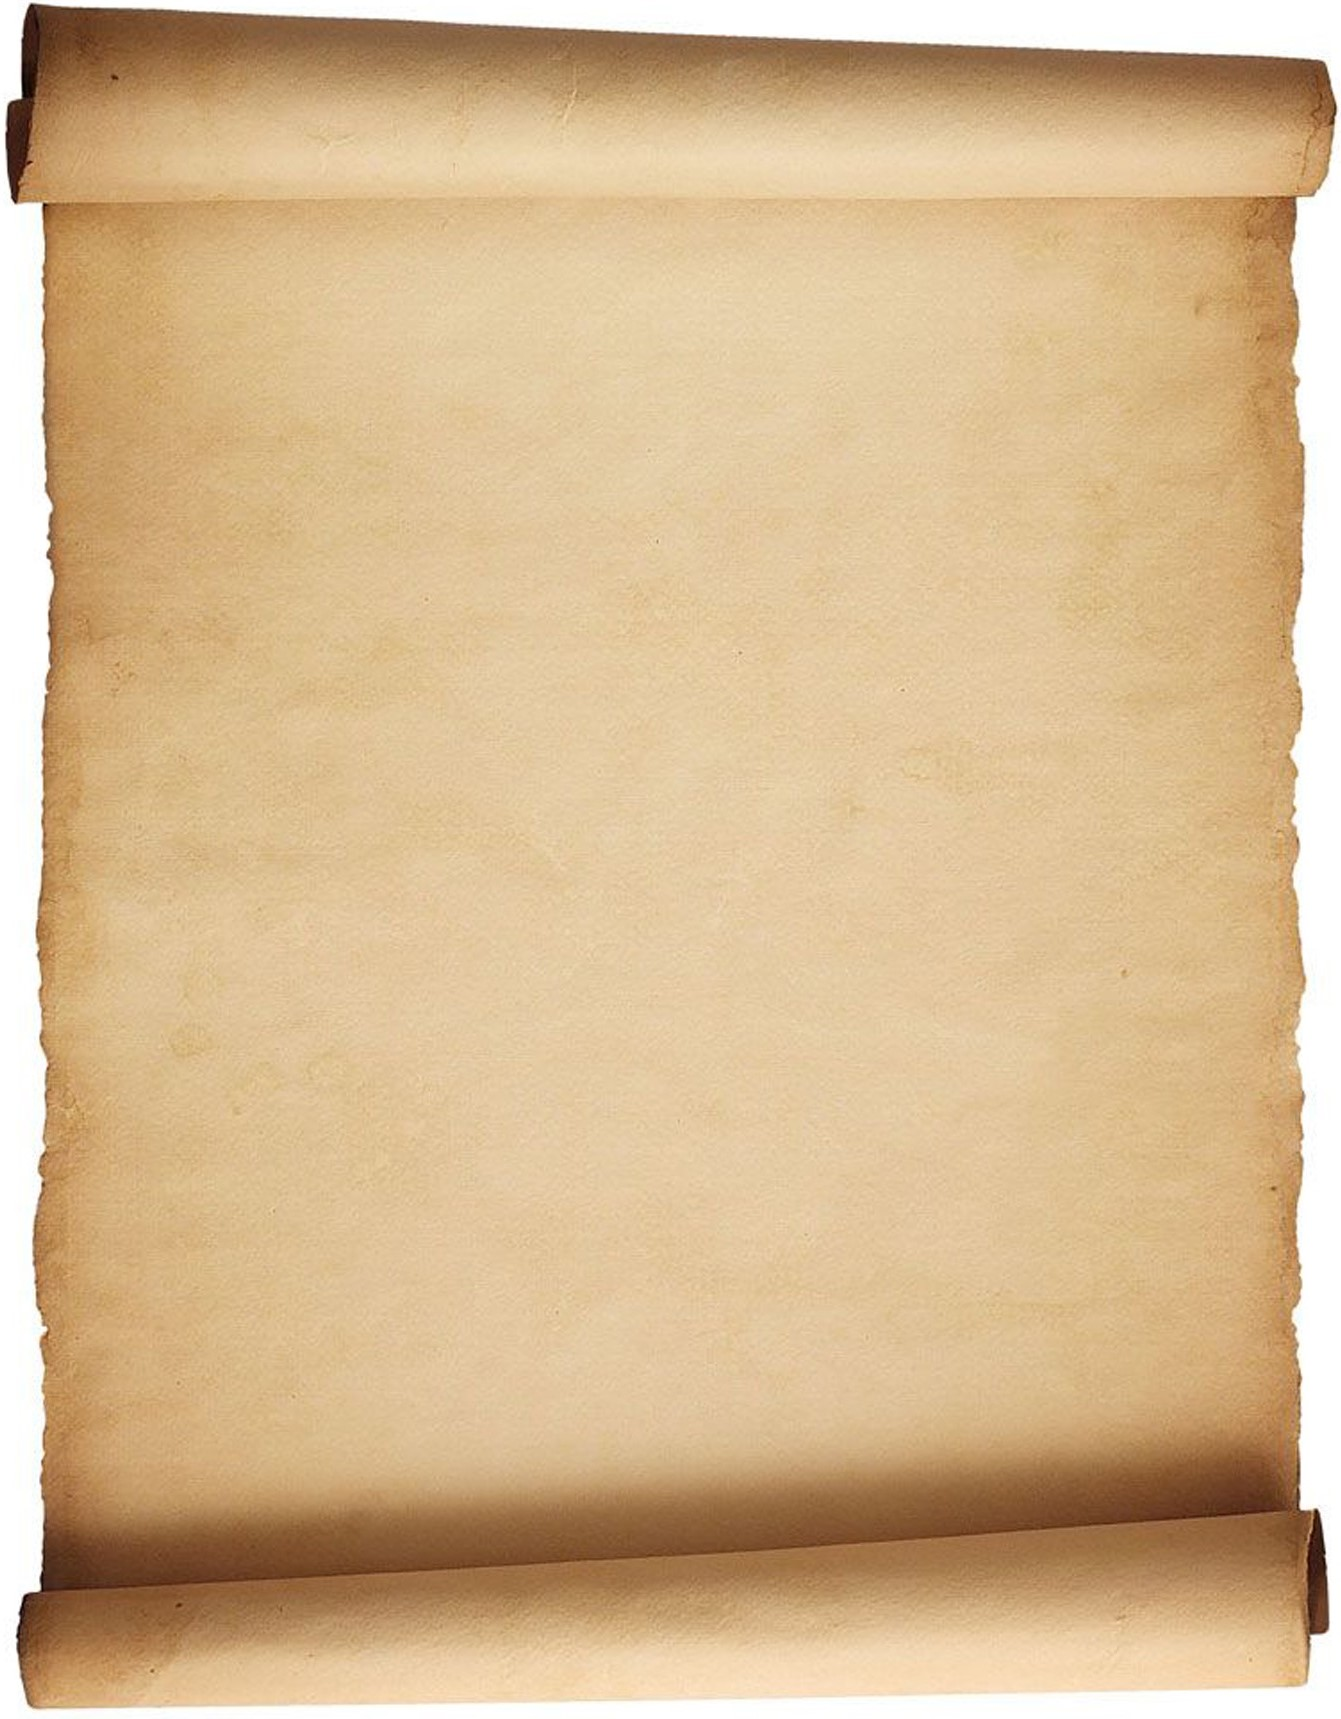 Scroll clipart parchment Paper Download Two Clip Texture